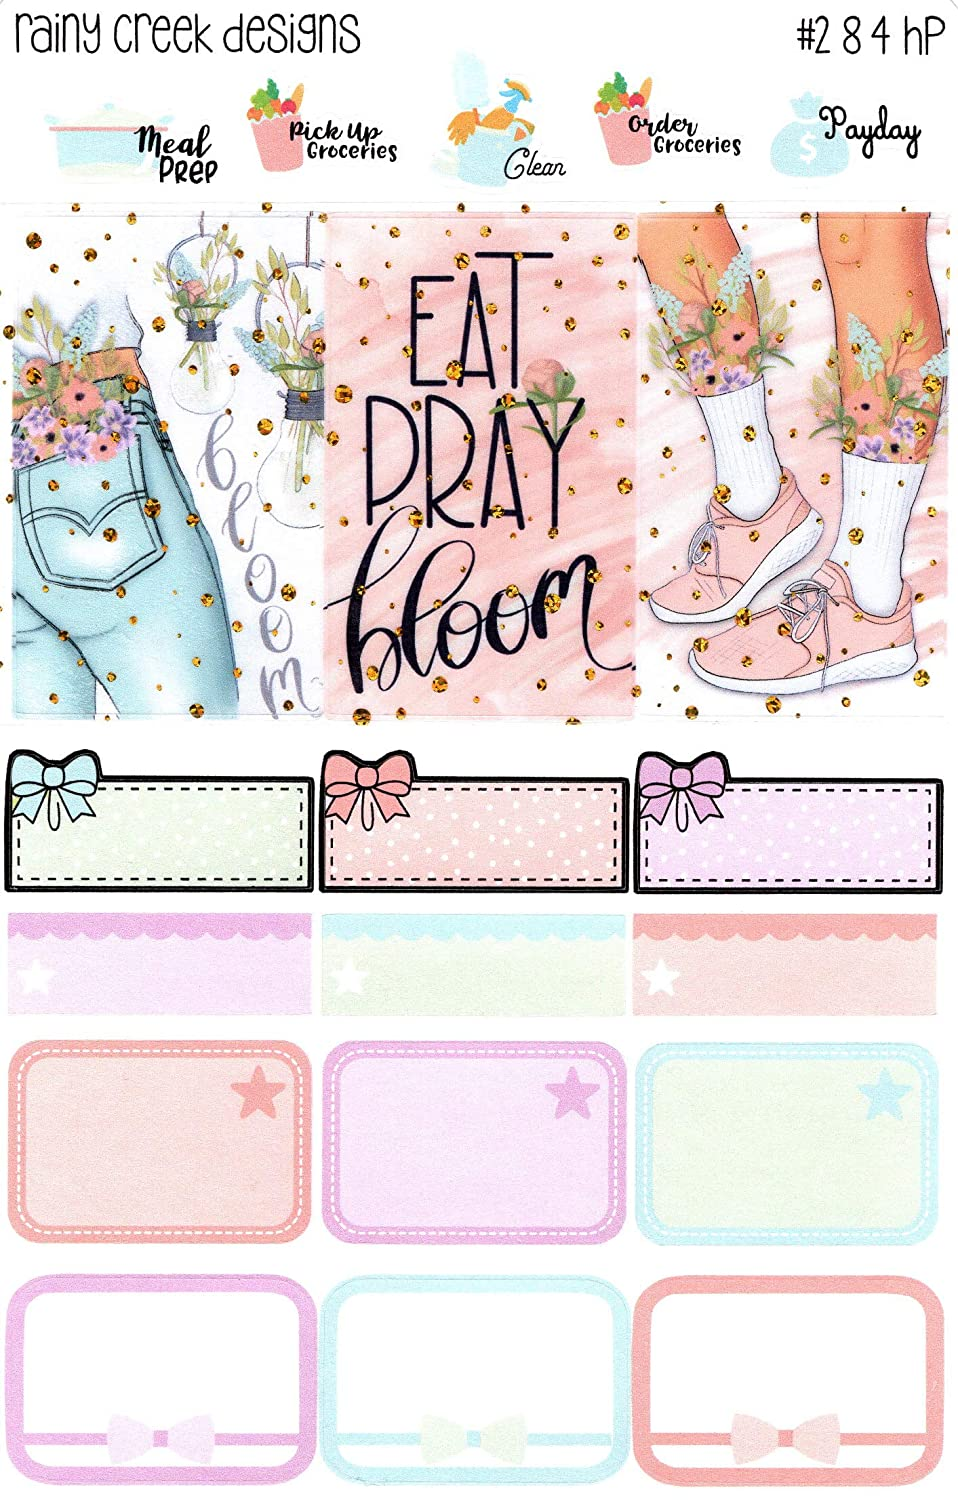 Eat Pray Bloom 2 Page Weekly Planner Sticker Kit for Happy Planner Classic Planners//Functional Stickers//Decorative Stickers// #284 HP